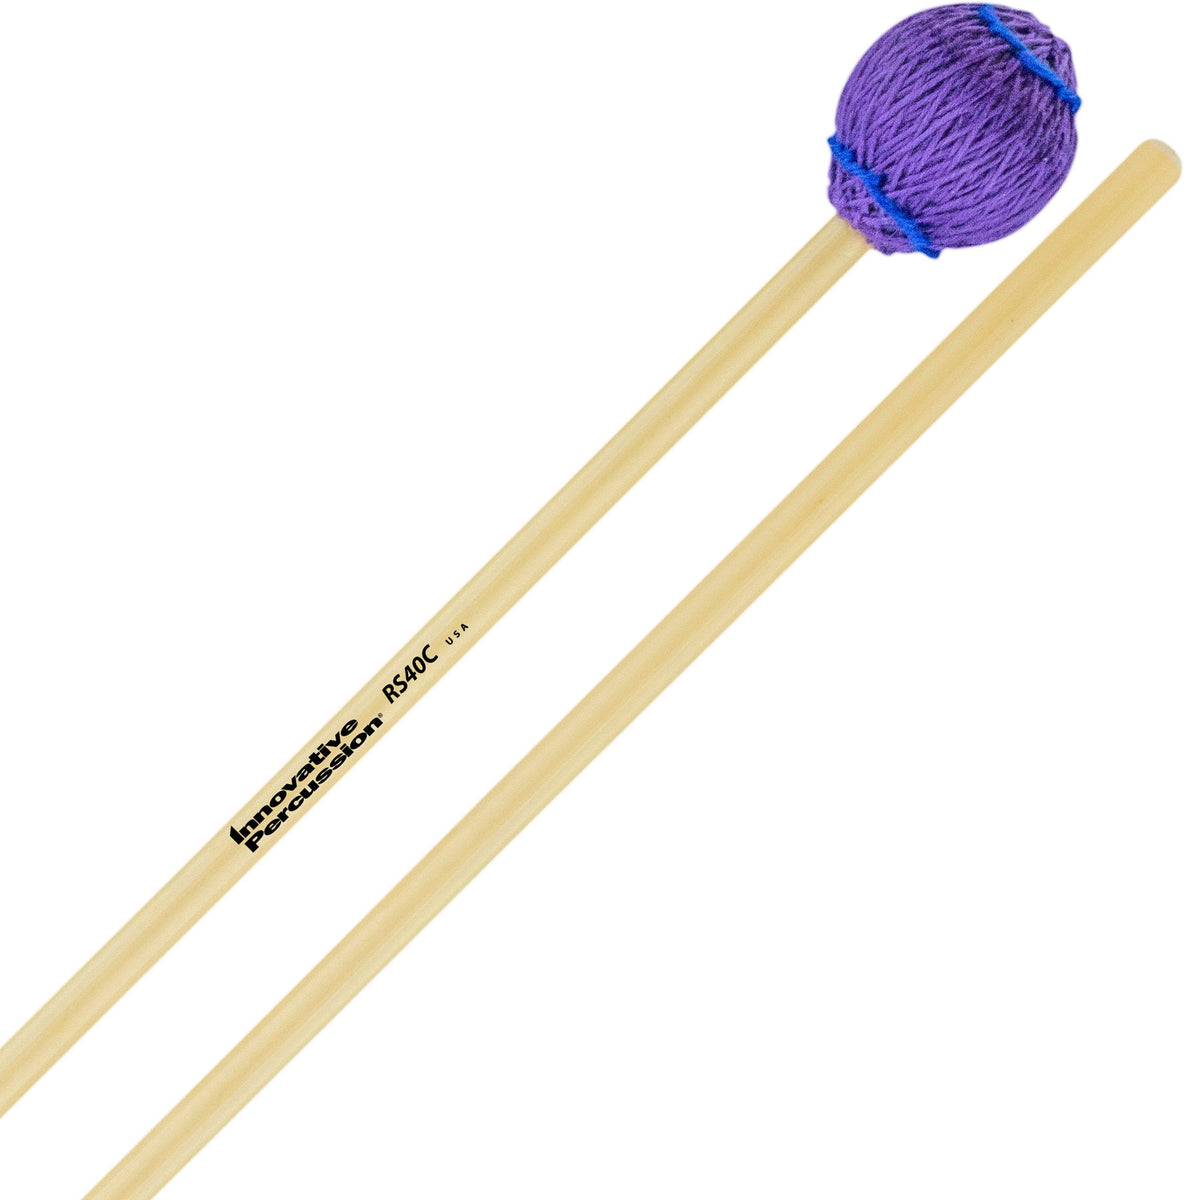 Innovative Percussion - Rattan Series Concert Vibraphone/Marimba Mallets-Percussion-Innovative Percussion-RS40C Hard-Music Elements